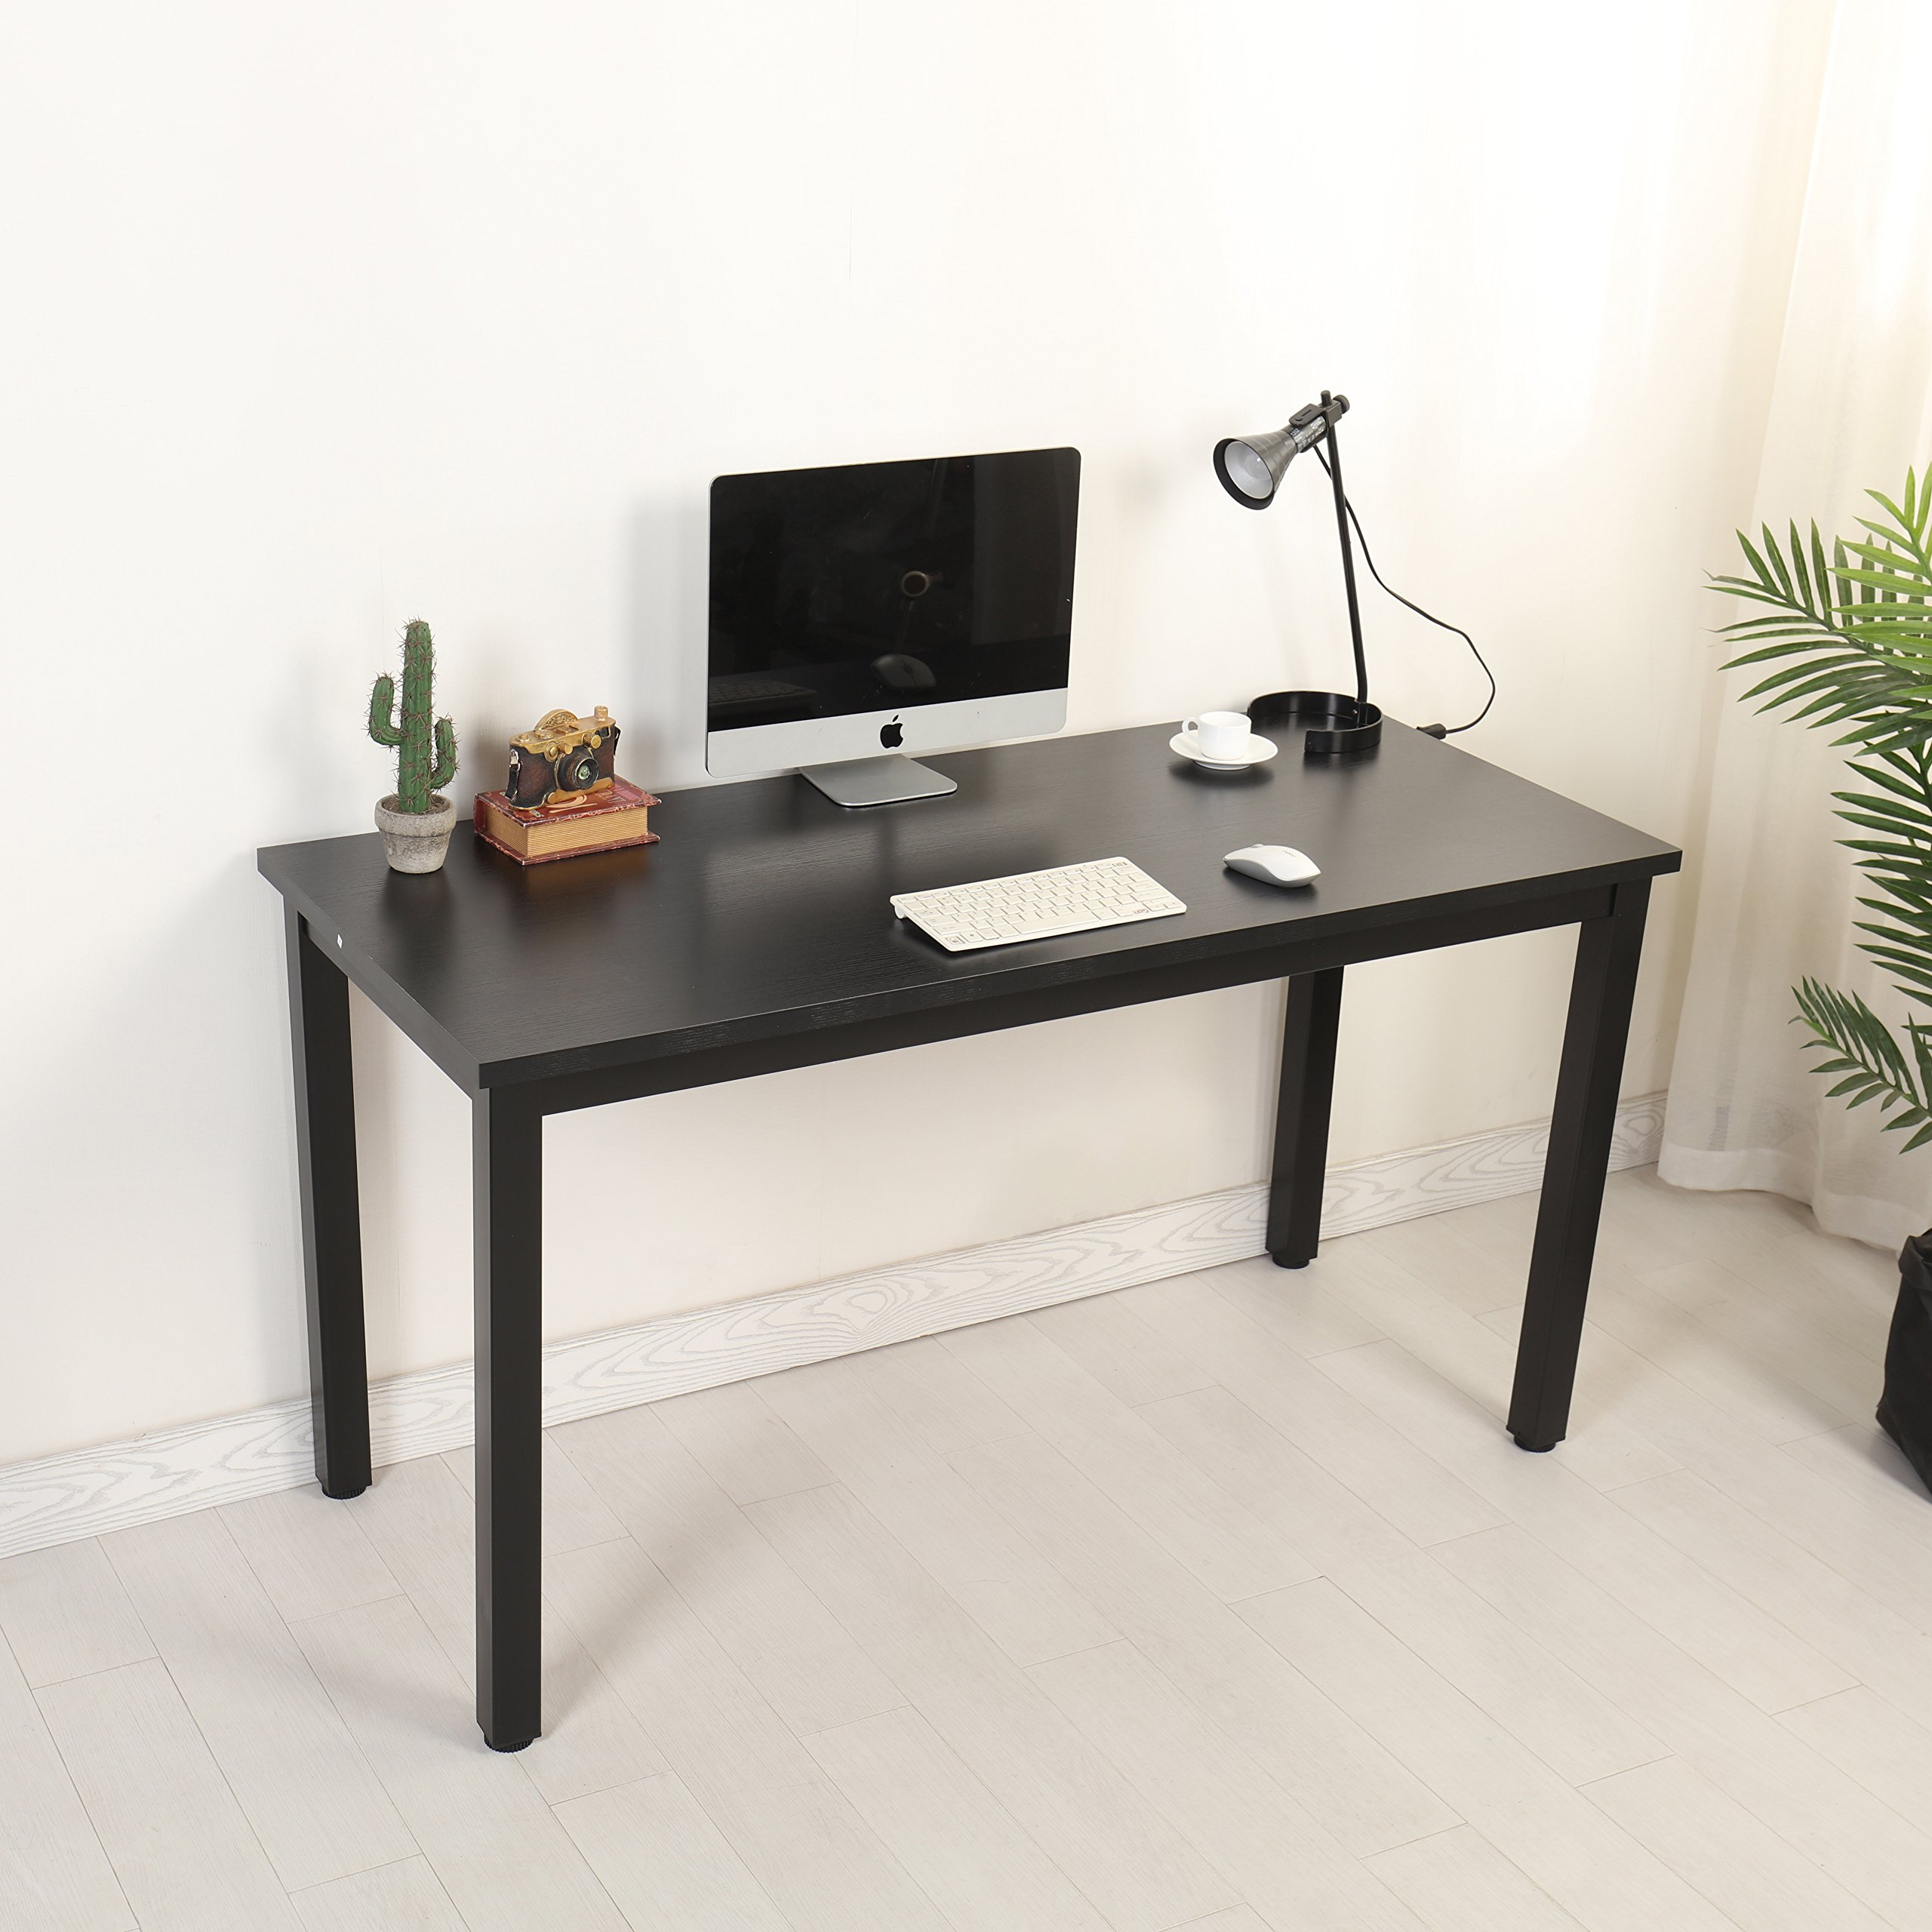 Mr IRONSTONE Computer Desk 47'' PC Laptop Study Writing Utility Table Multipurpose Workstation for Home Office